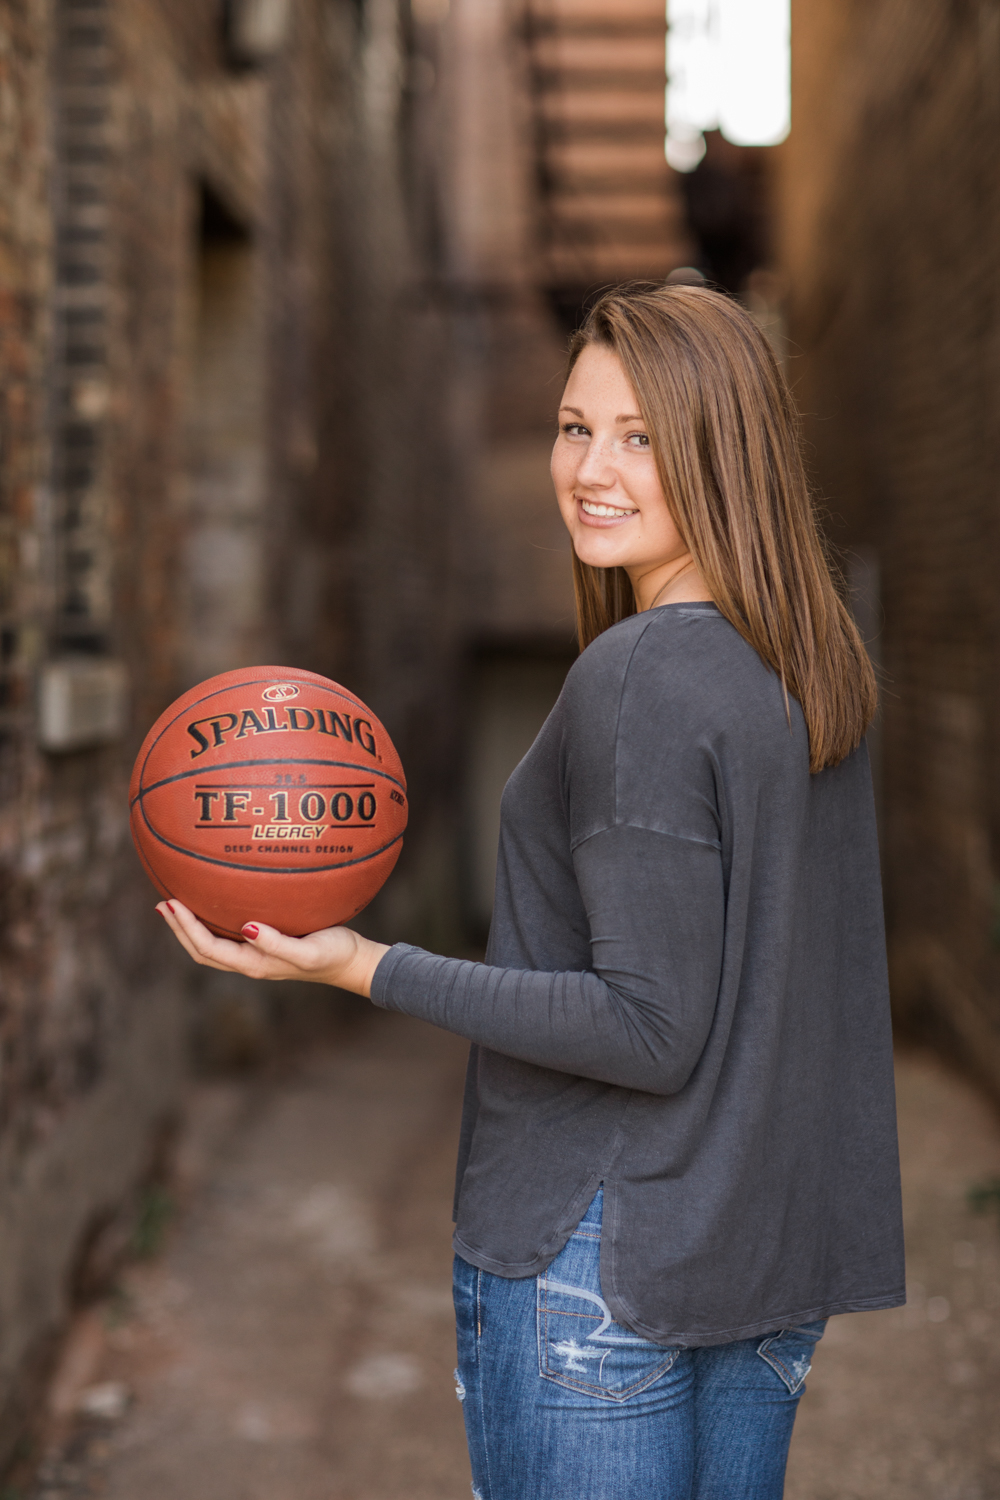 jill_hogan_senior_photography (11 of 14).jpg